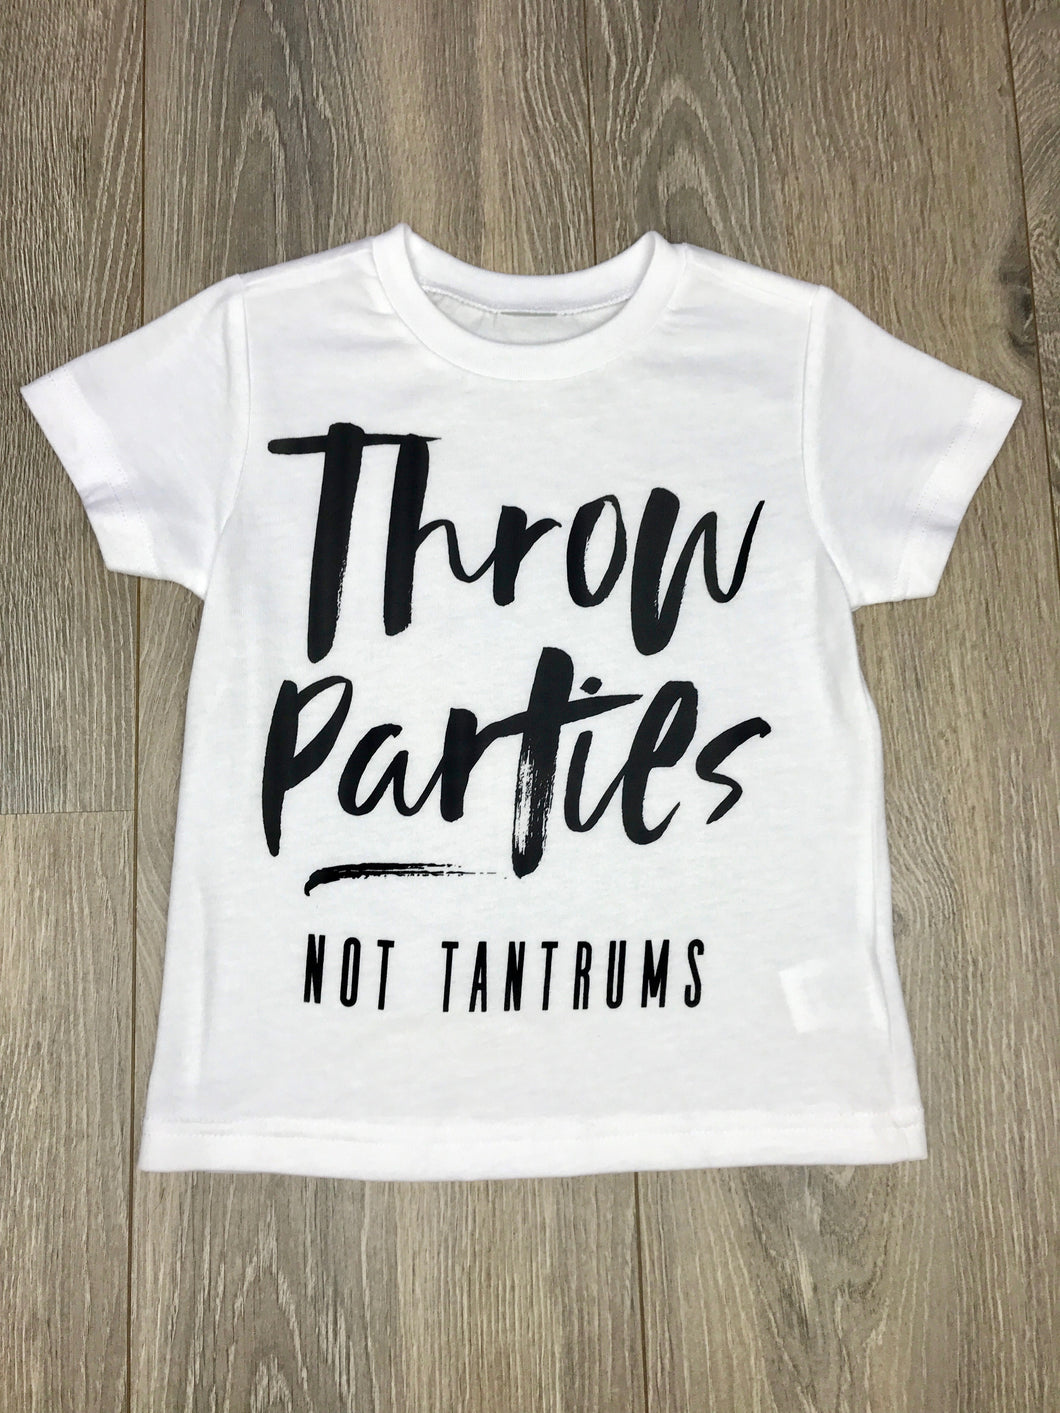 Nicky and Stella Throw Parties Not Tantrums Kids T-shirt